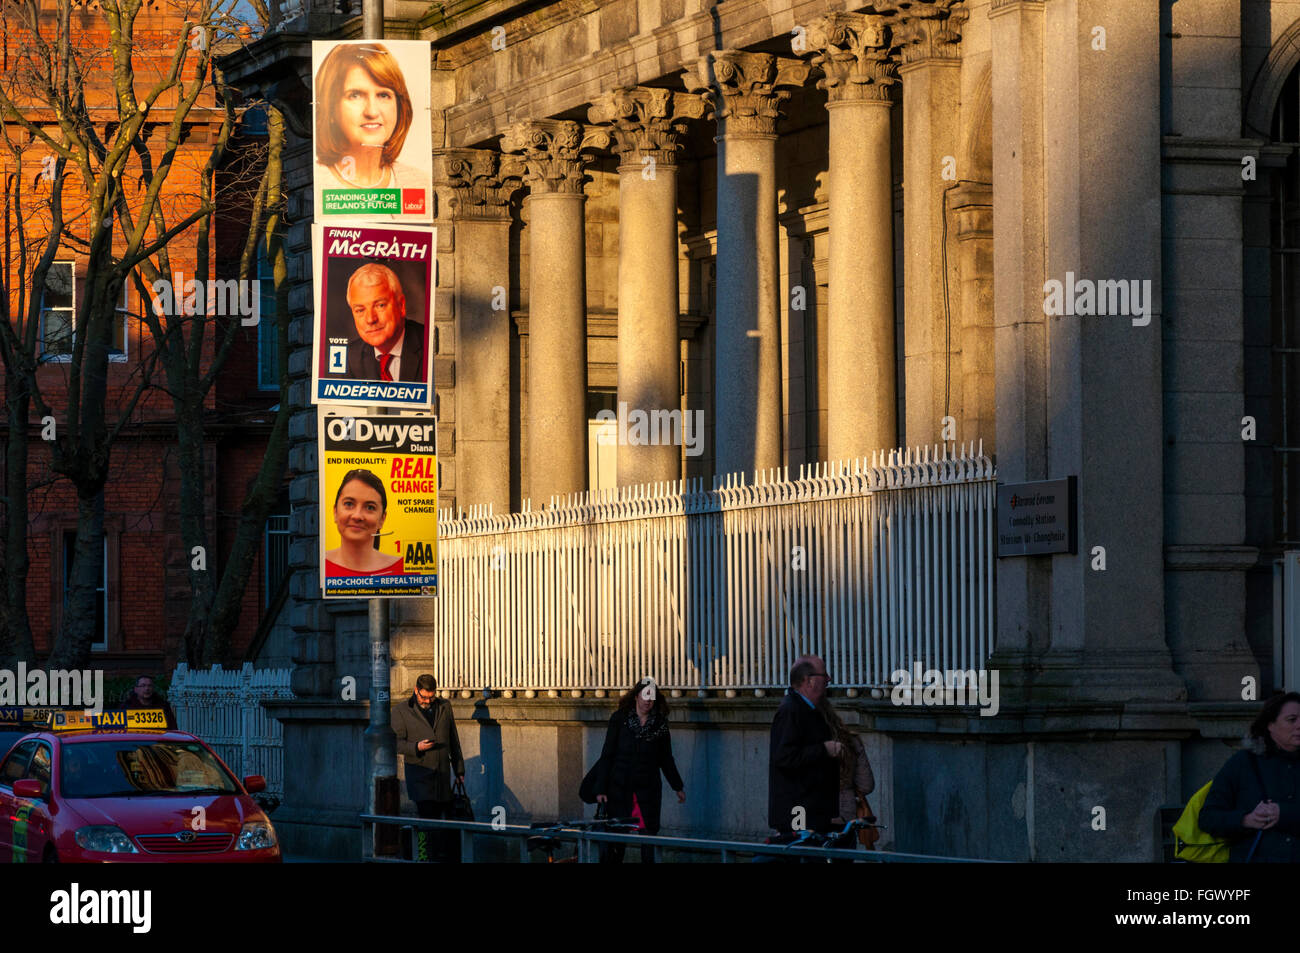 Dublin, Ireland. 22nd February 2016. Election posters by Connolly Railway Station in the capital. The Irish General - Stock Image